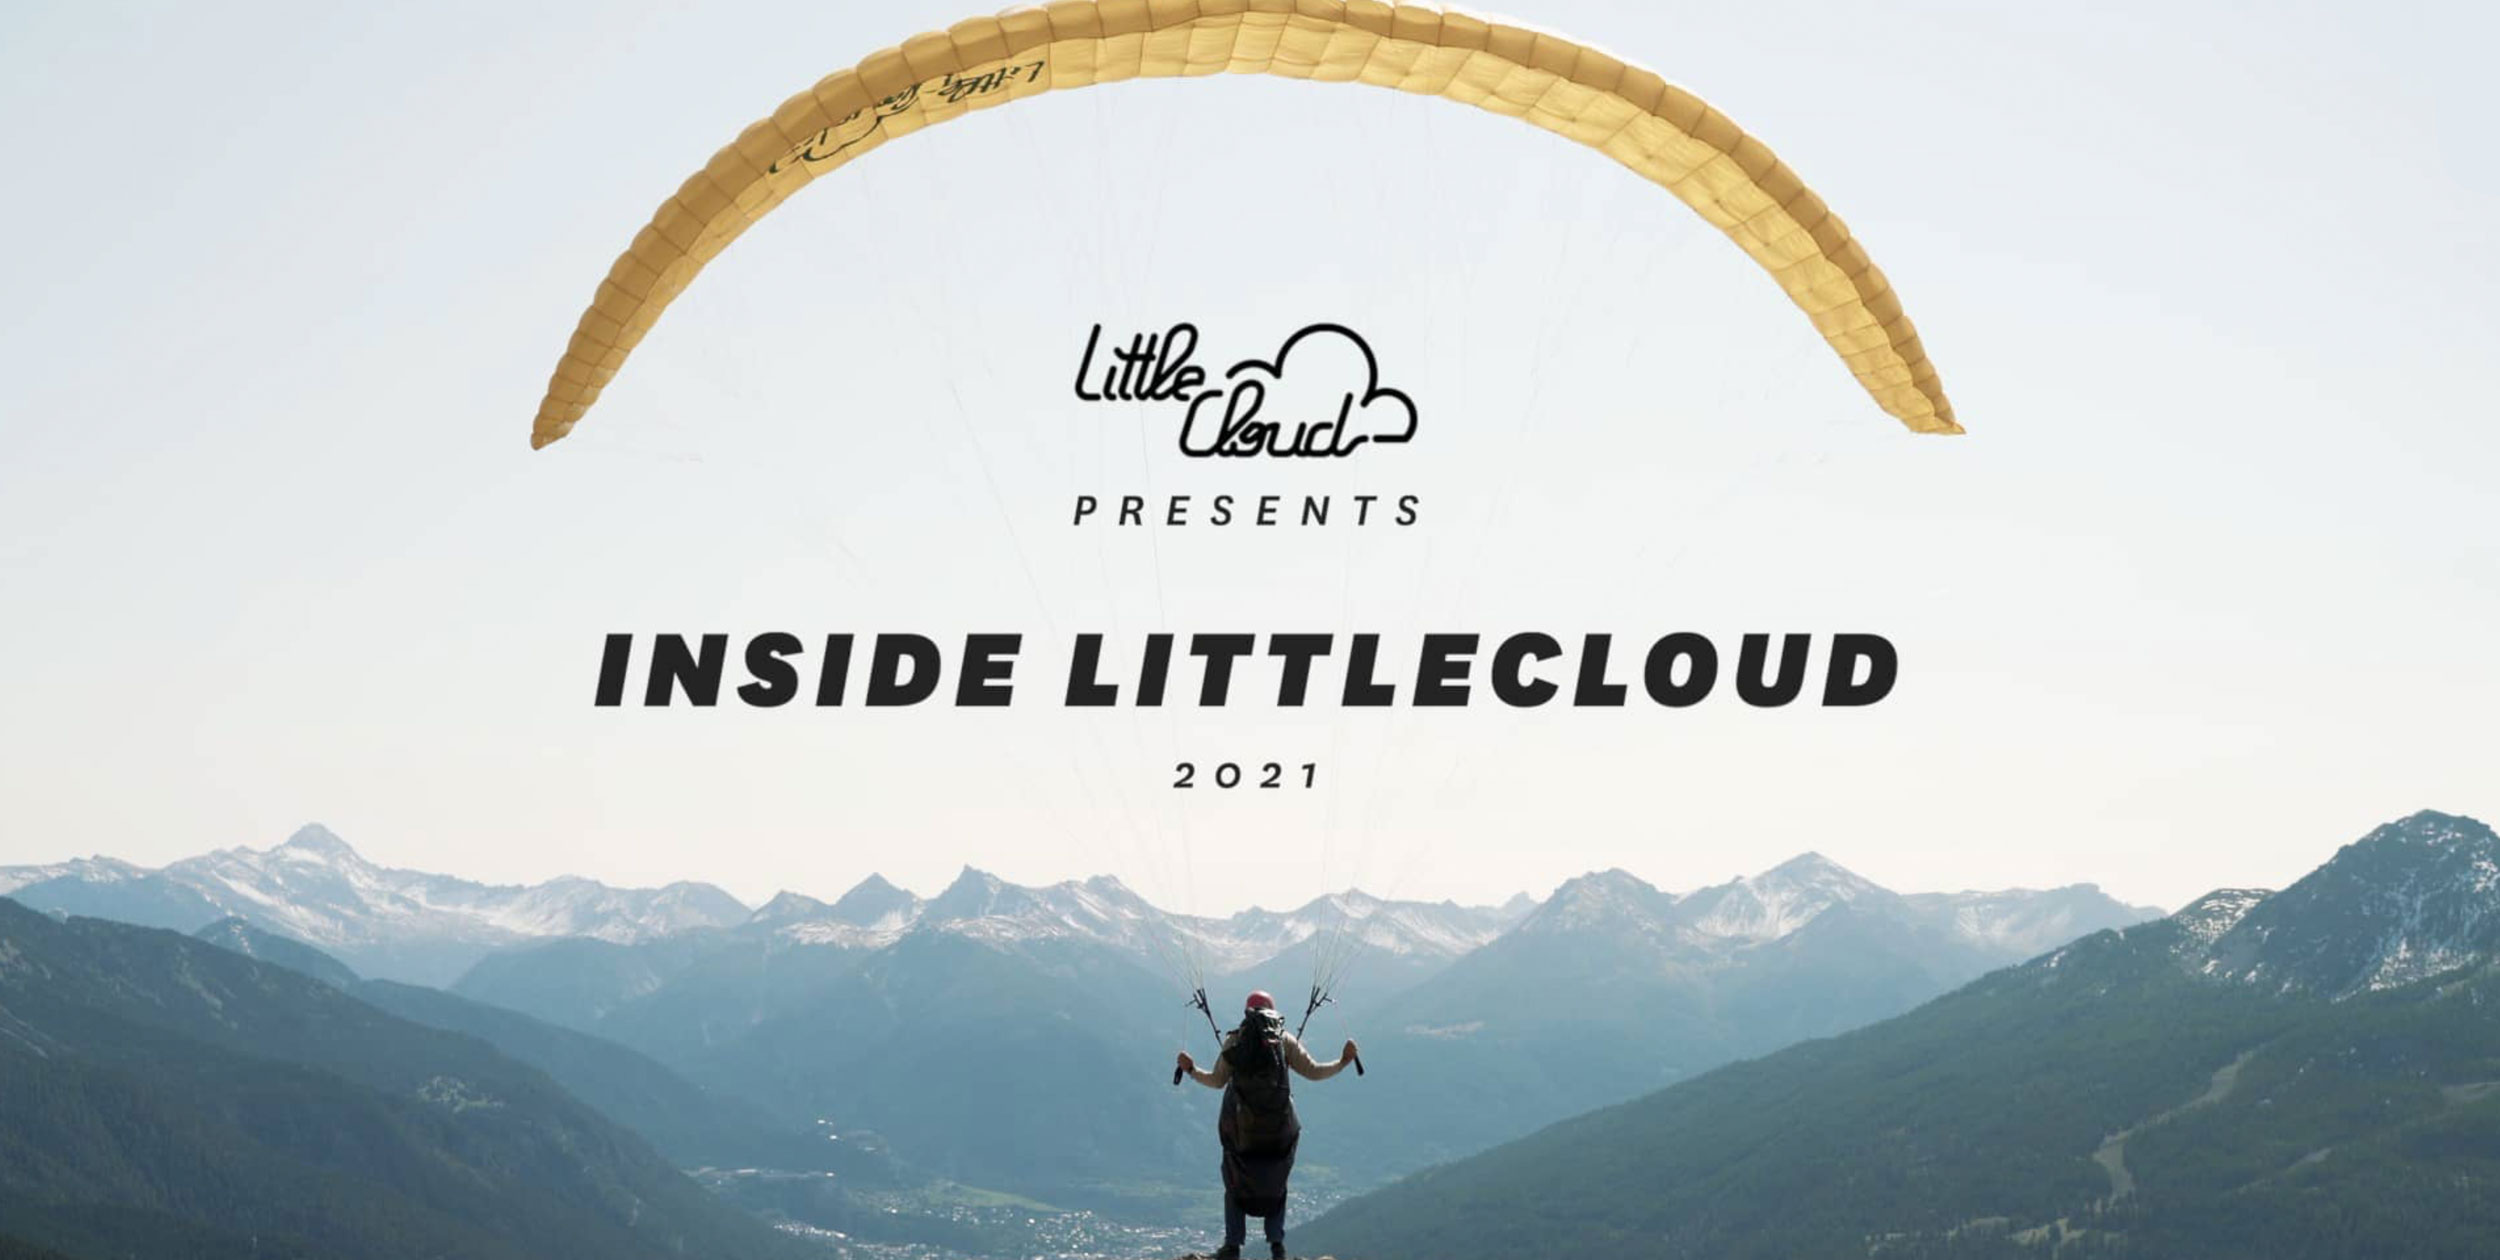 Inside Little Cloud video